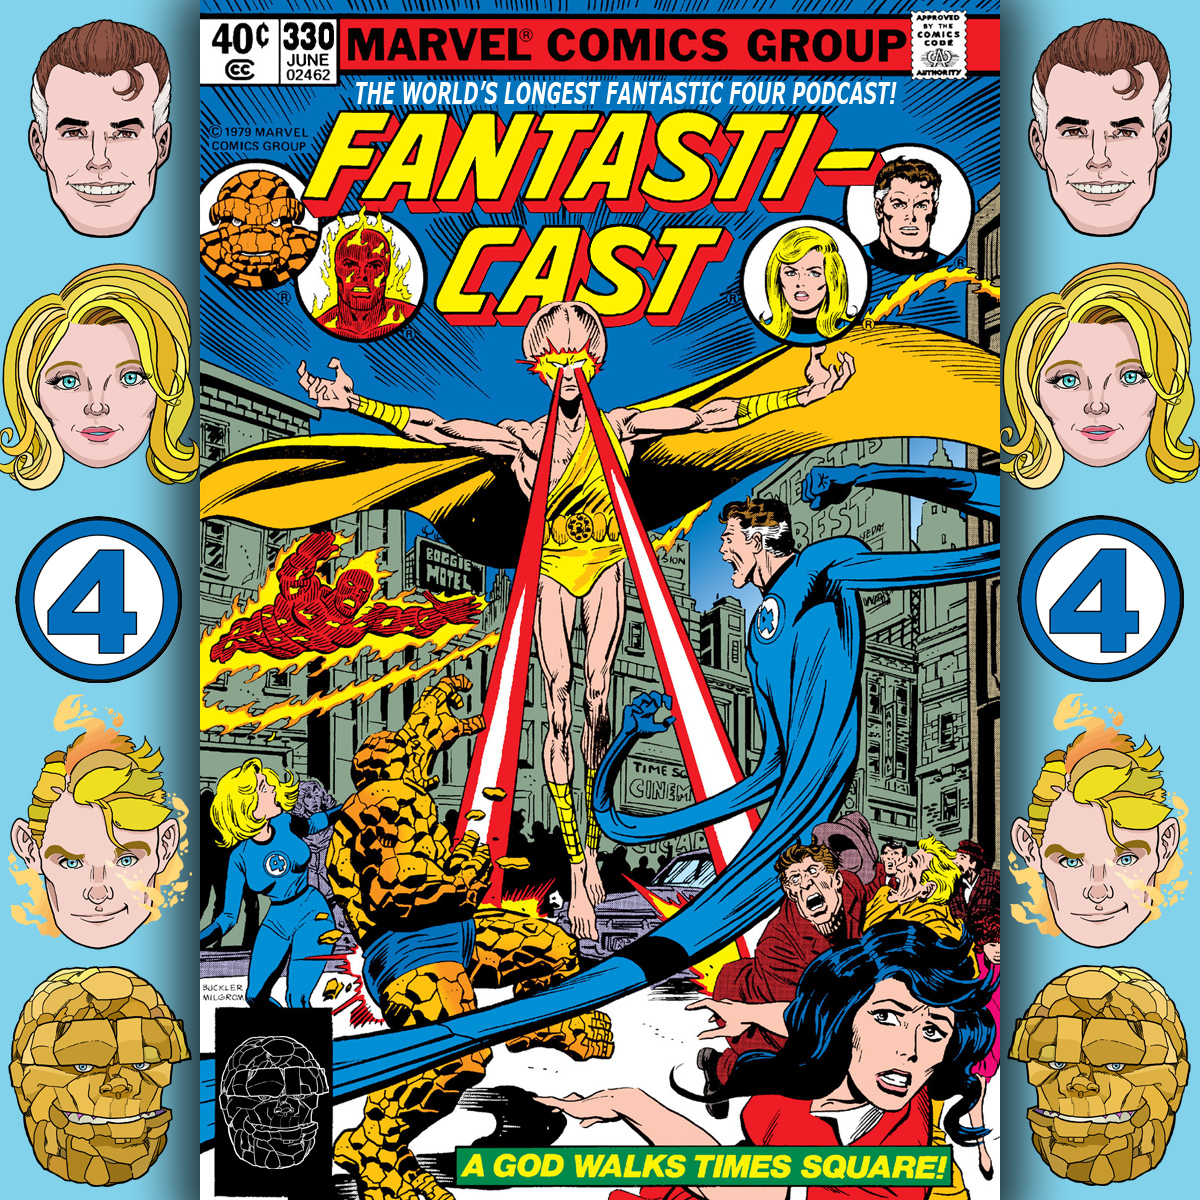 The Fantasticast Episode 330